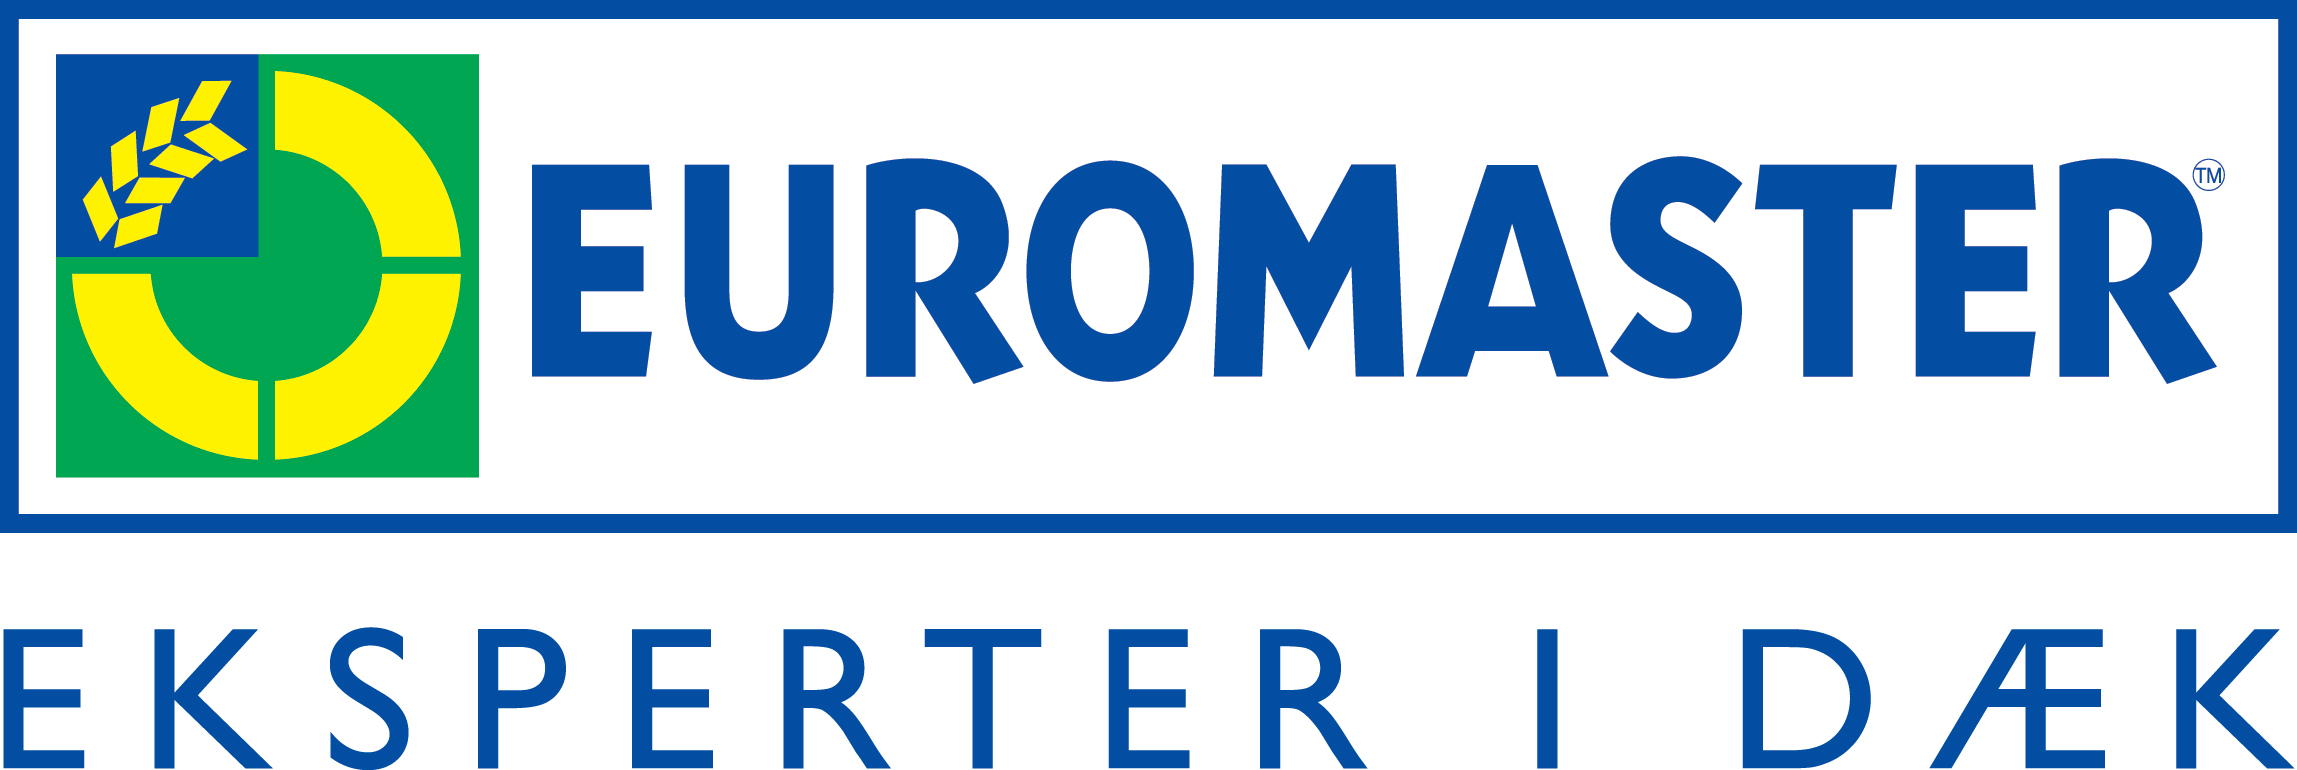 Euromaster-logo_-med-bl%c3%a5-tekst